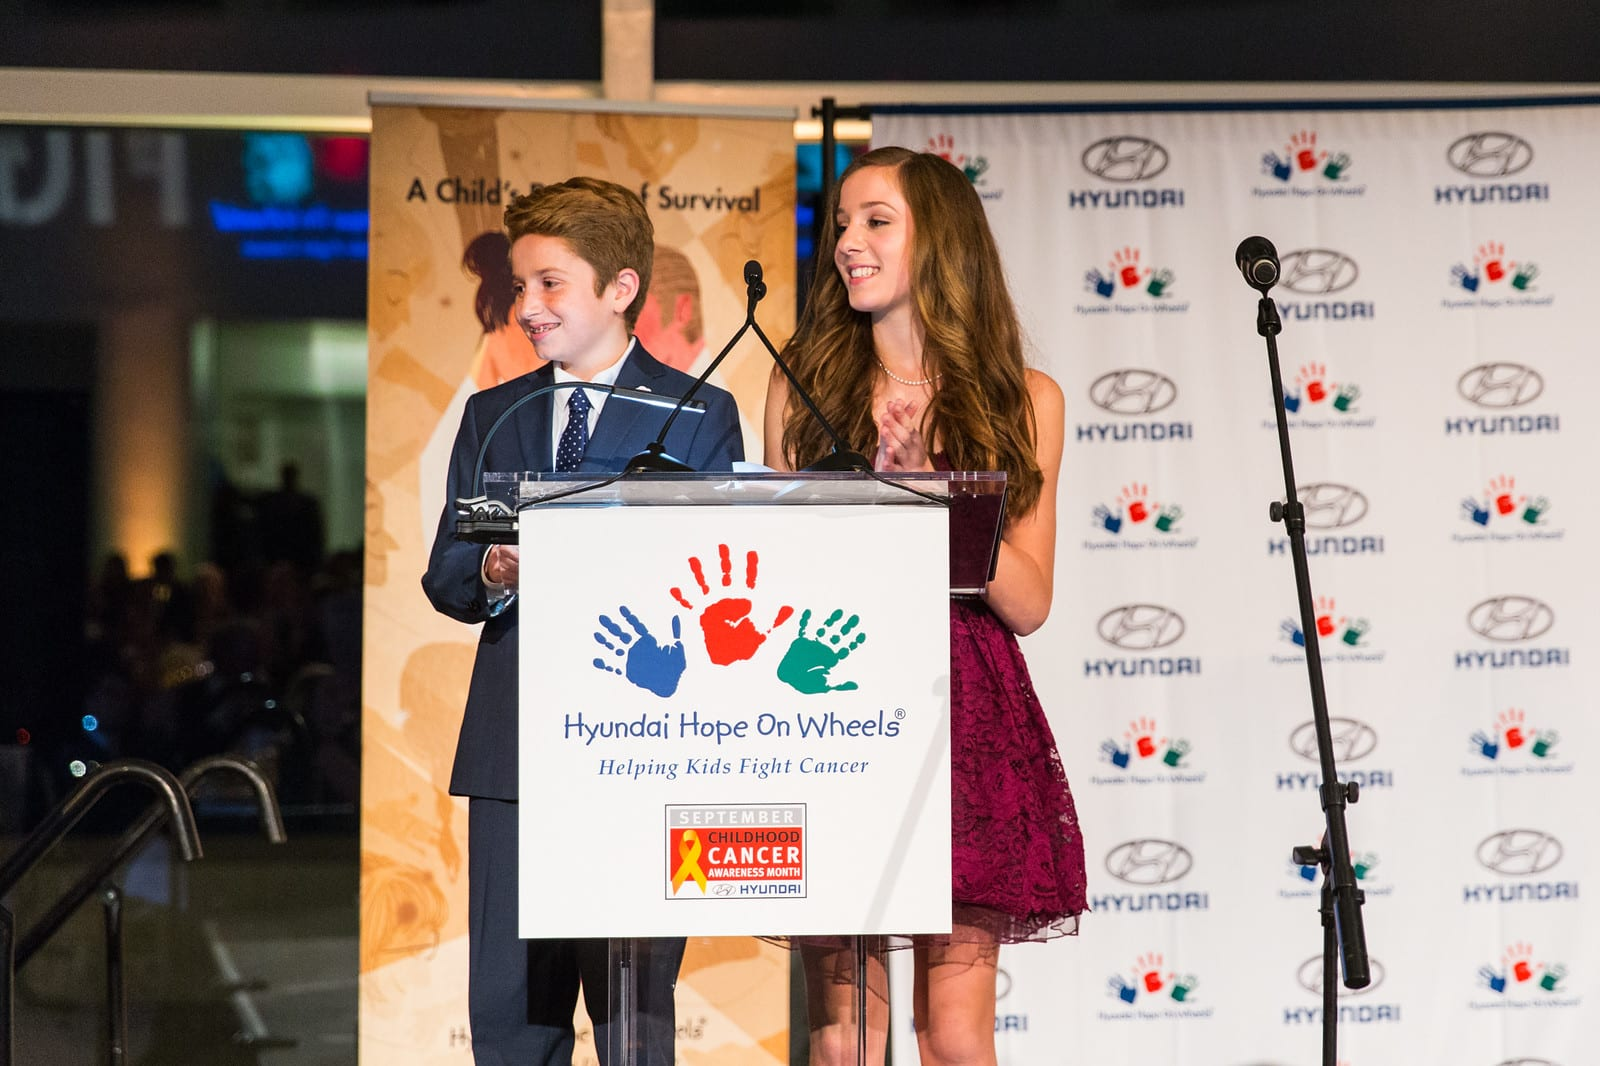 """Hyundai Hope On Wheels Wraps Up A Successful 2016 """"dc Days"""" In Celebration Of National Childhood Cancer Awareness Month By Awarding $7.5 Million In New Pediatric Cancer Research Grant Awards To 34 Institutions"""